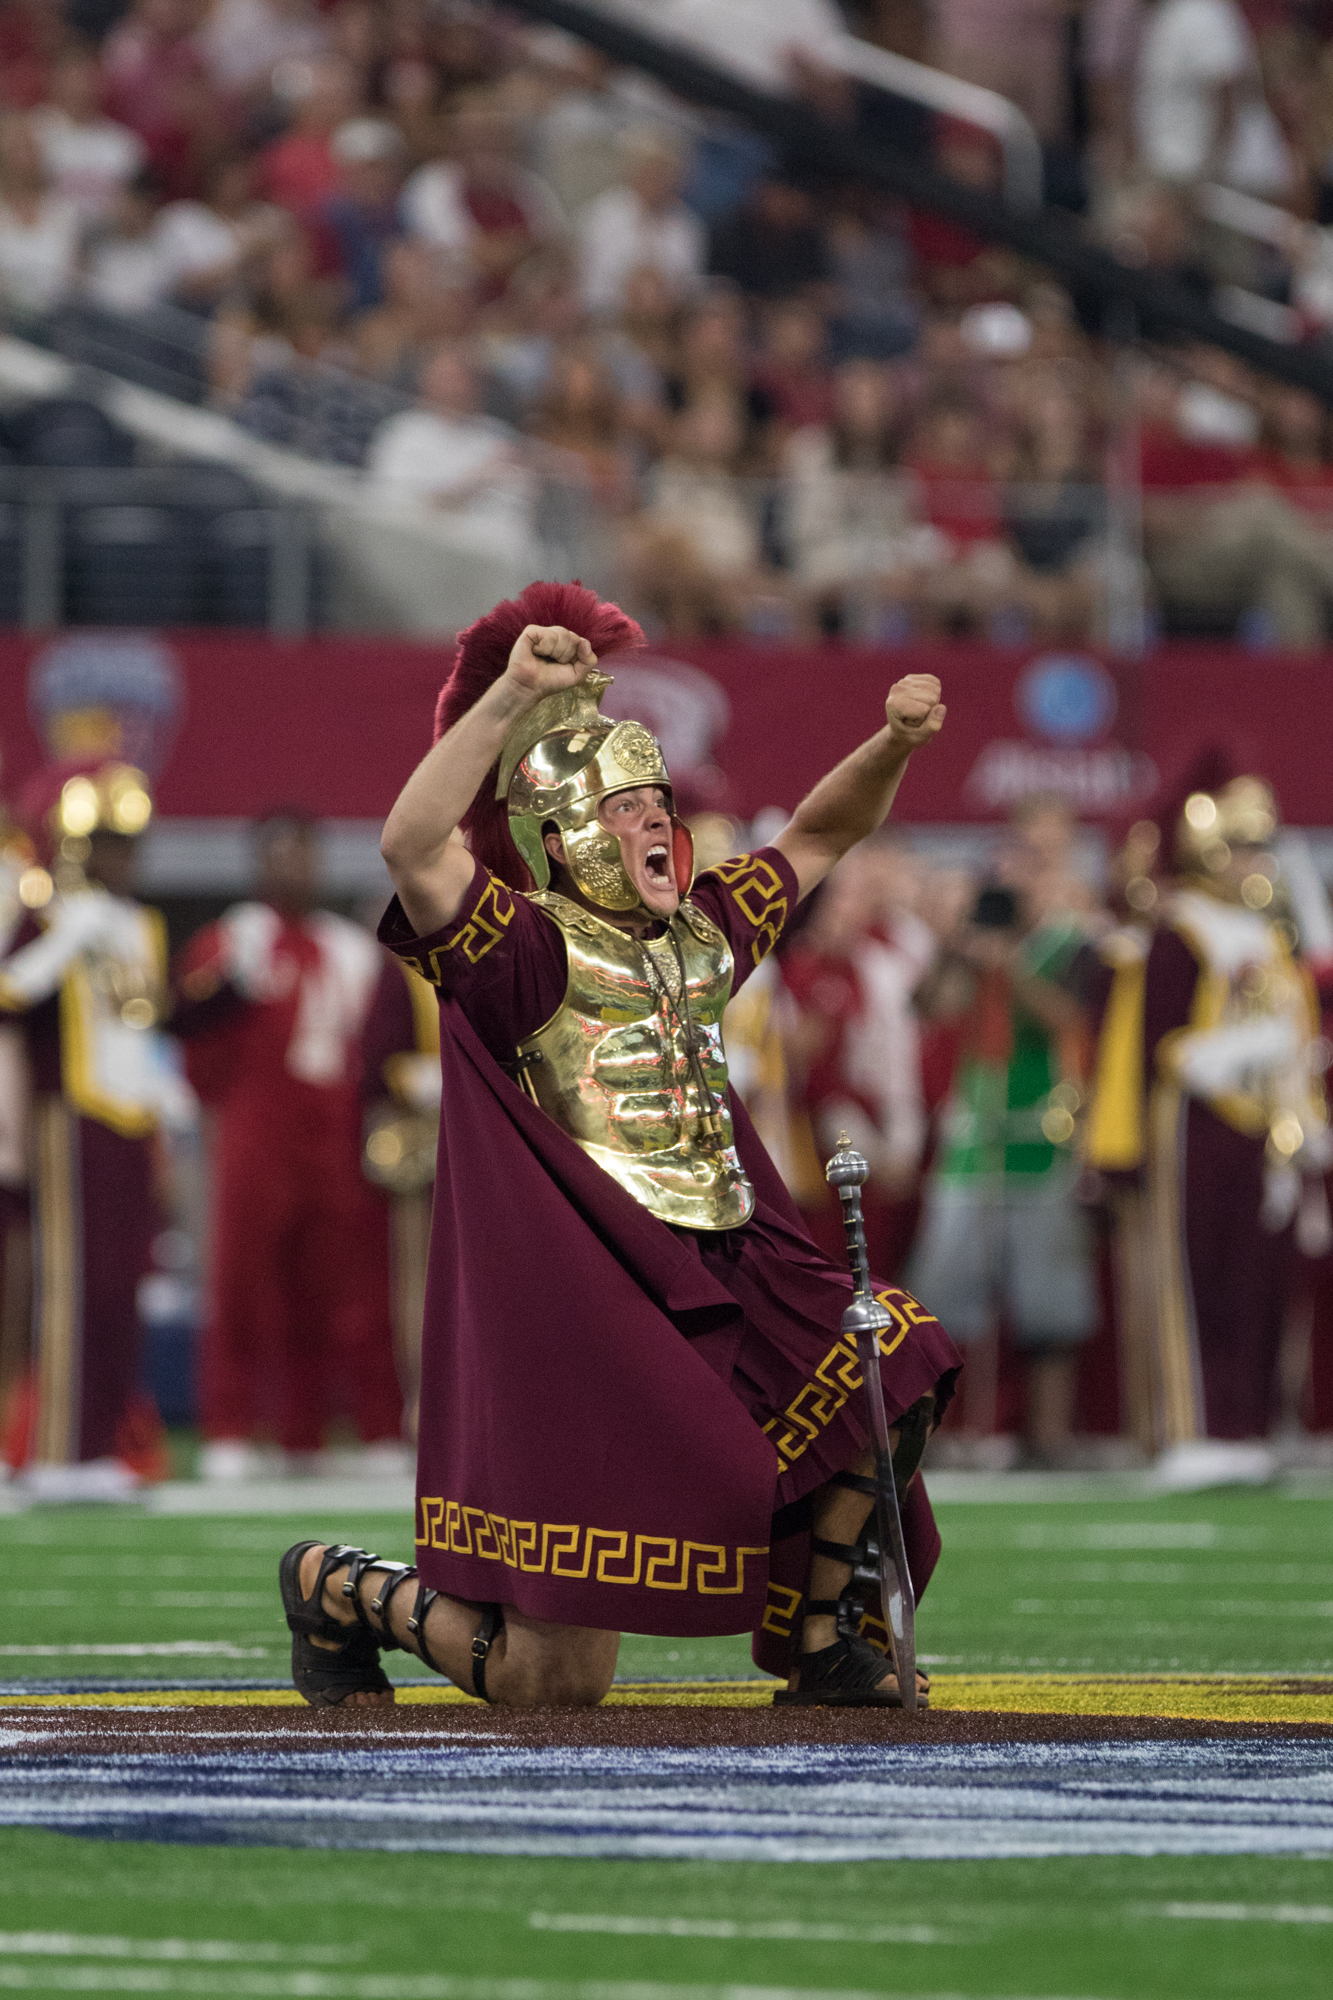 The Spirit of Troy Marching Band was led onto the field before the game by the drum major who started things off in his usual fashion — a sword in the ground.